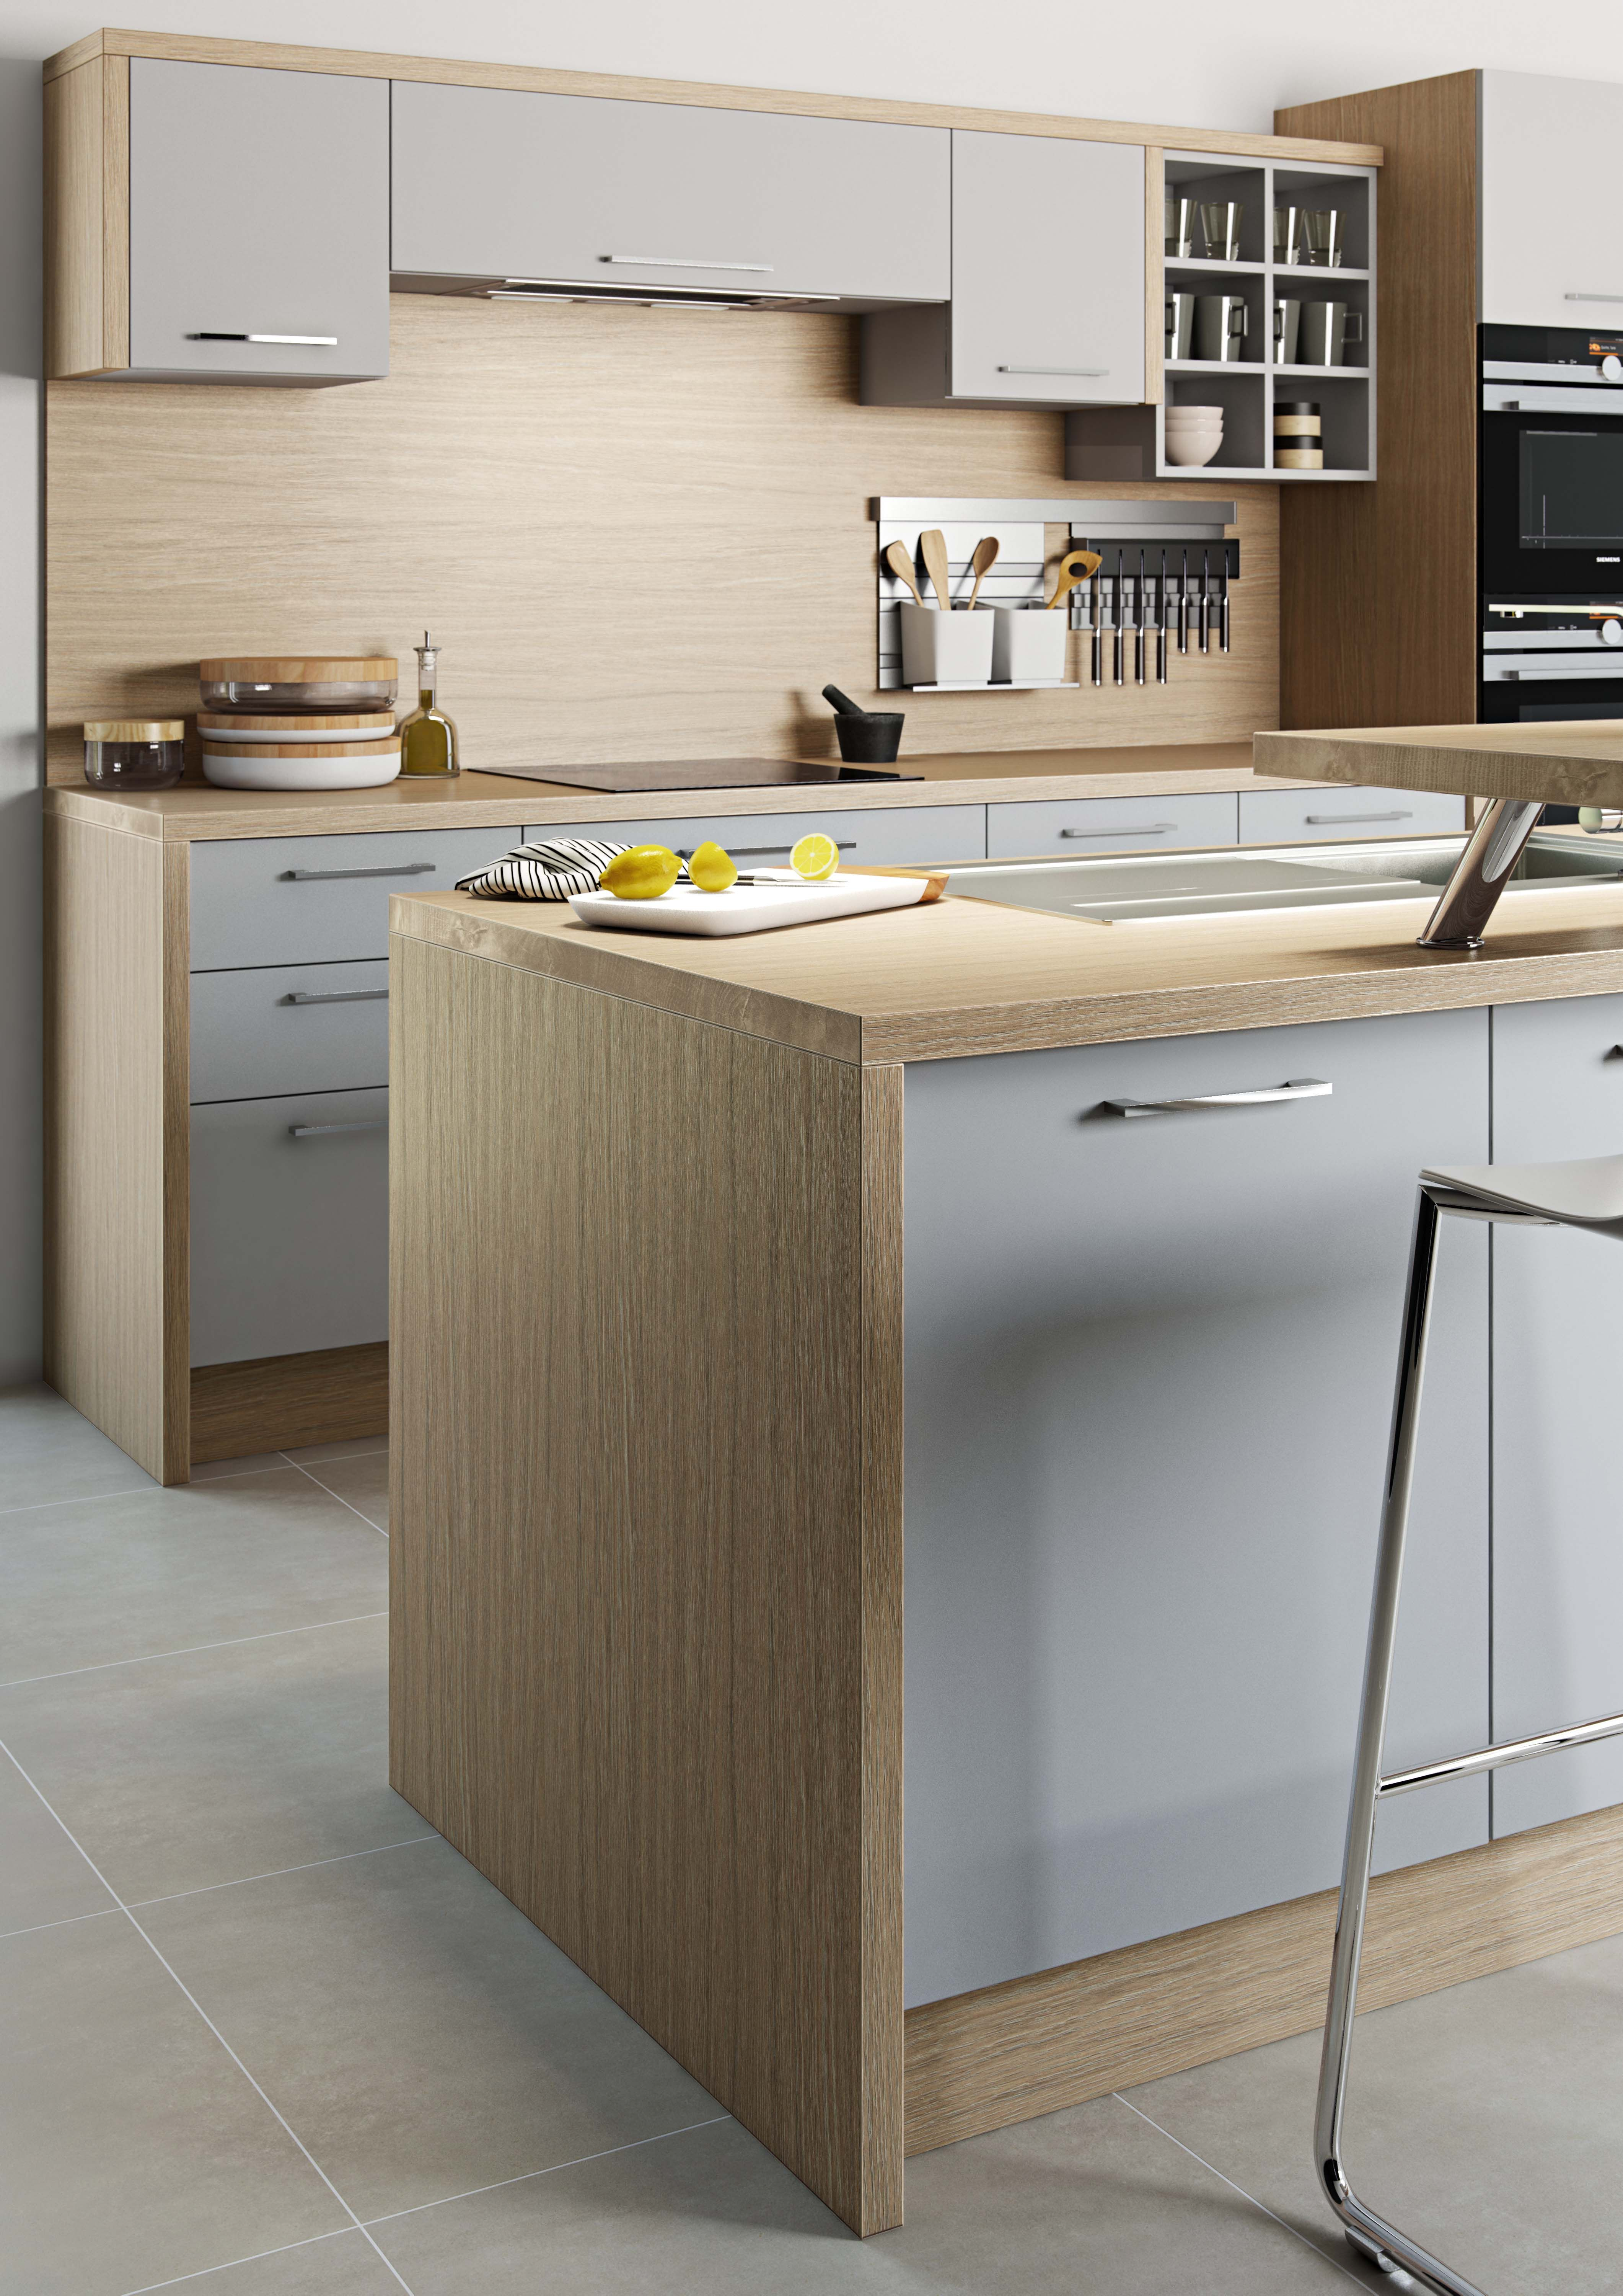 End Panels for your kitchen worktops and islands are the